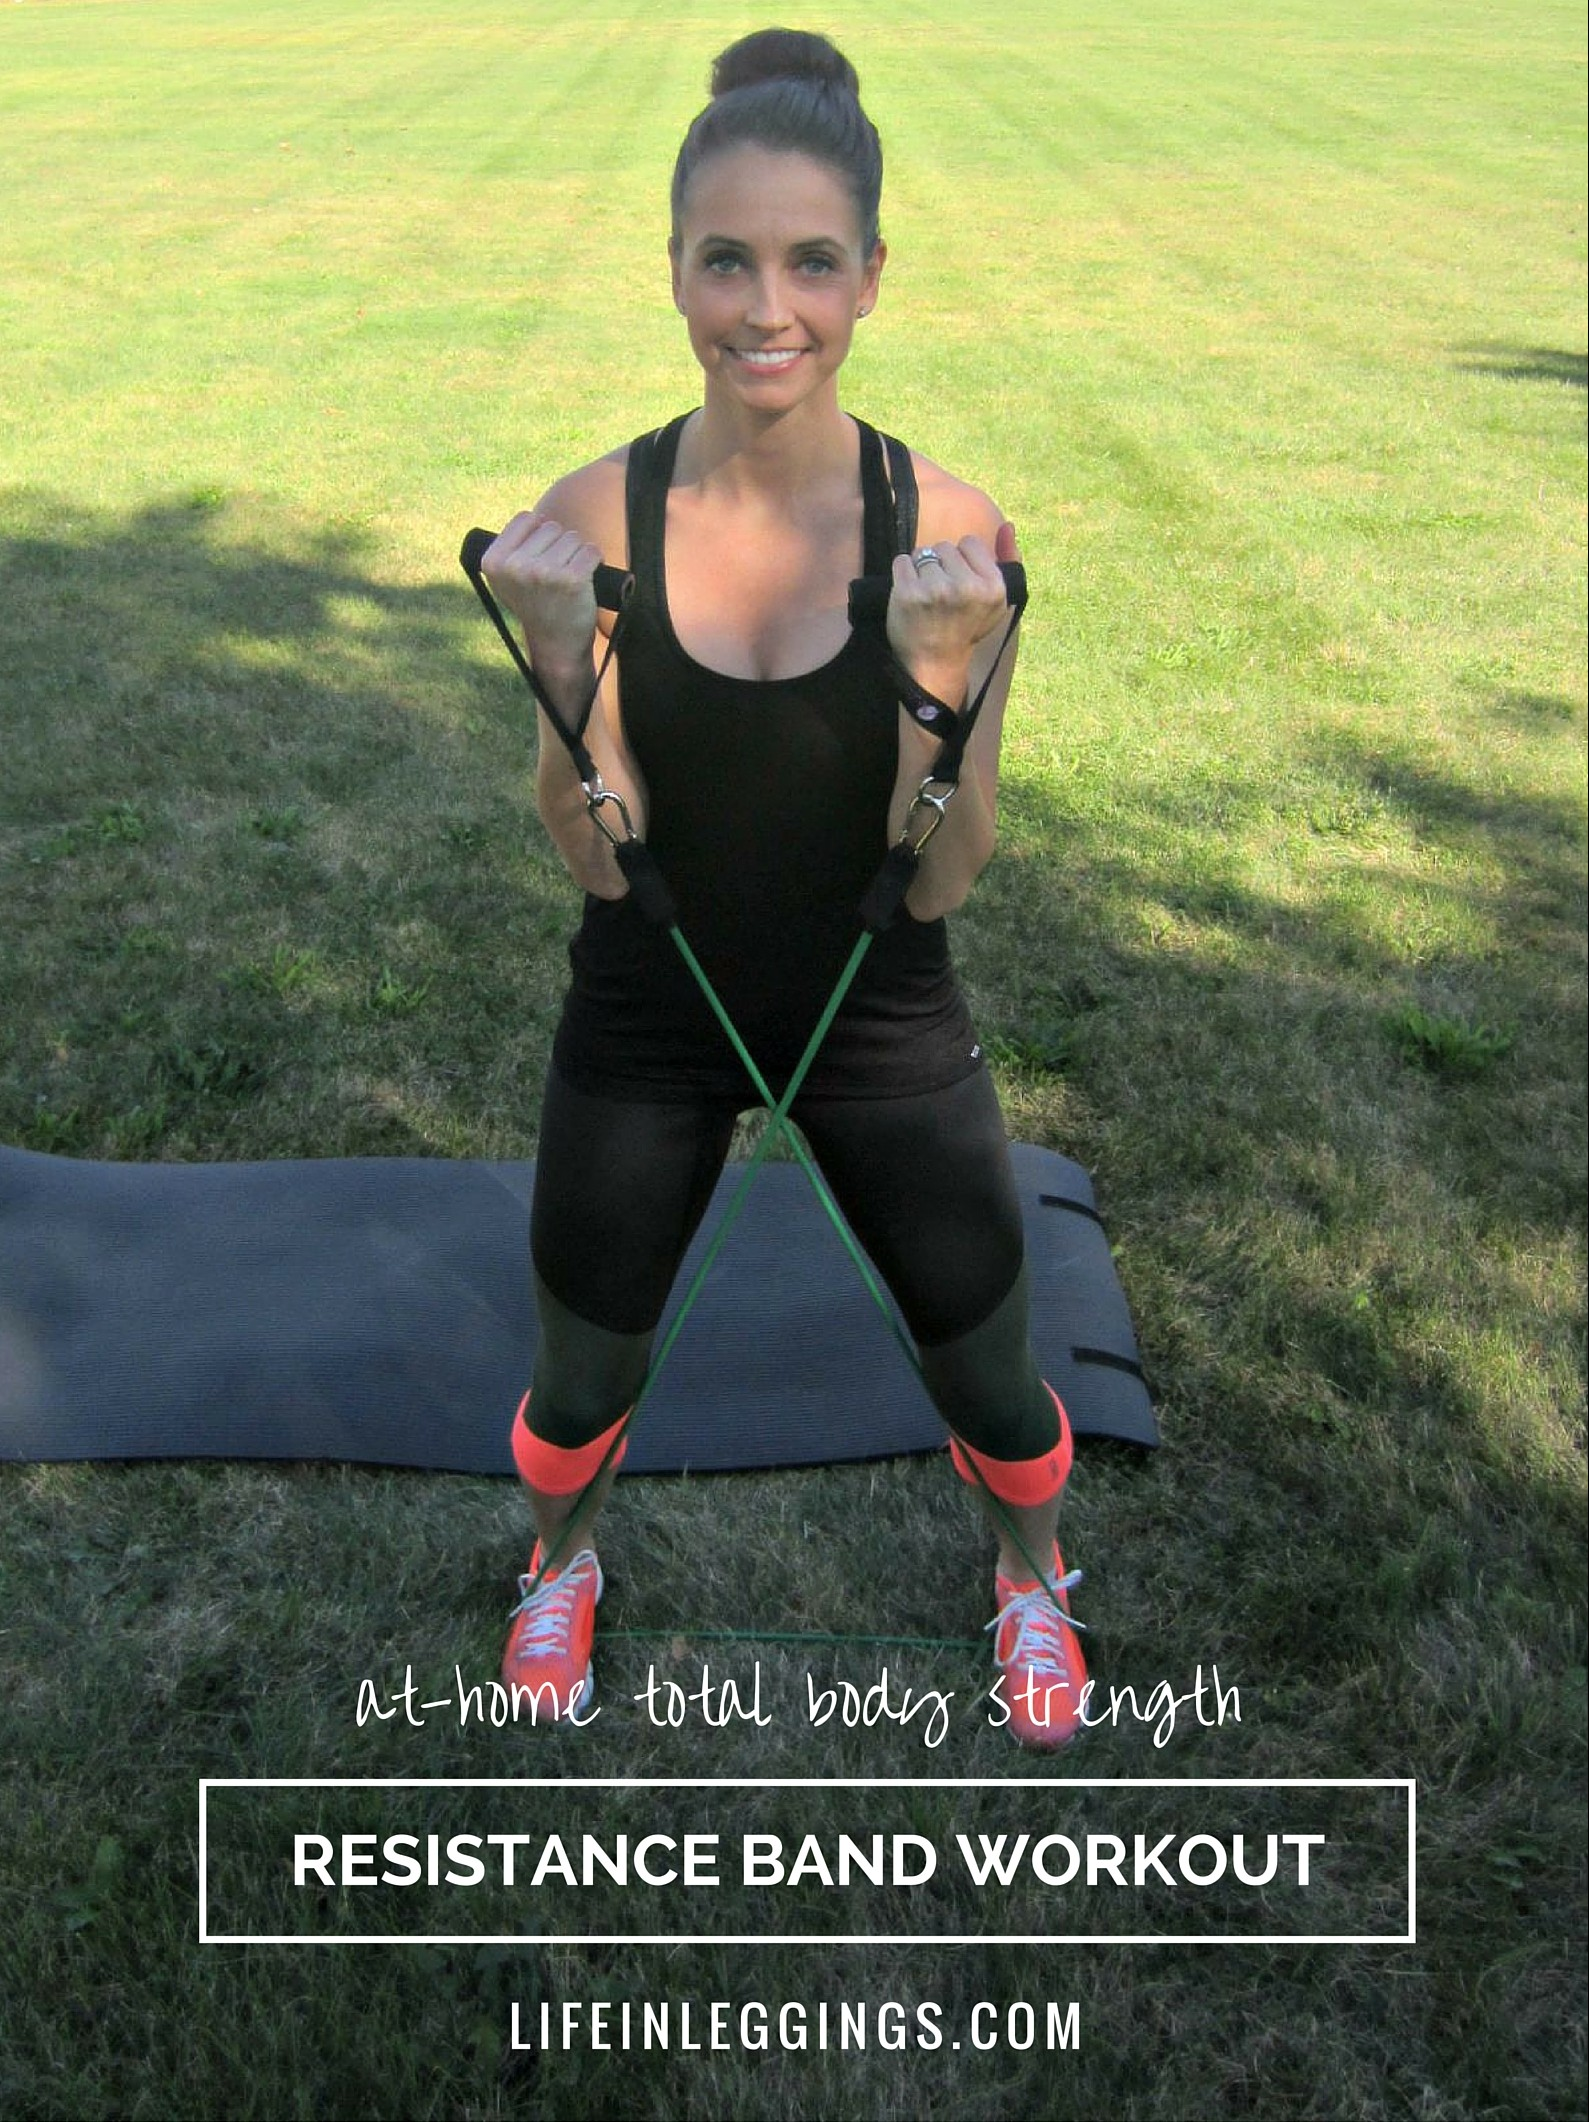 At-Home Total Body Strength Resistance Band Workout